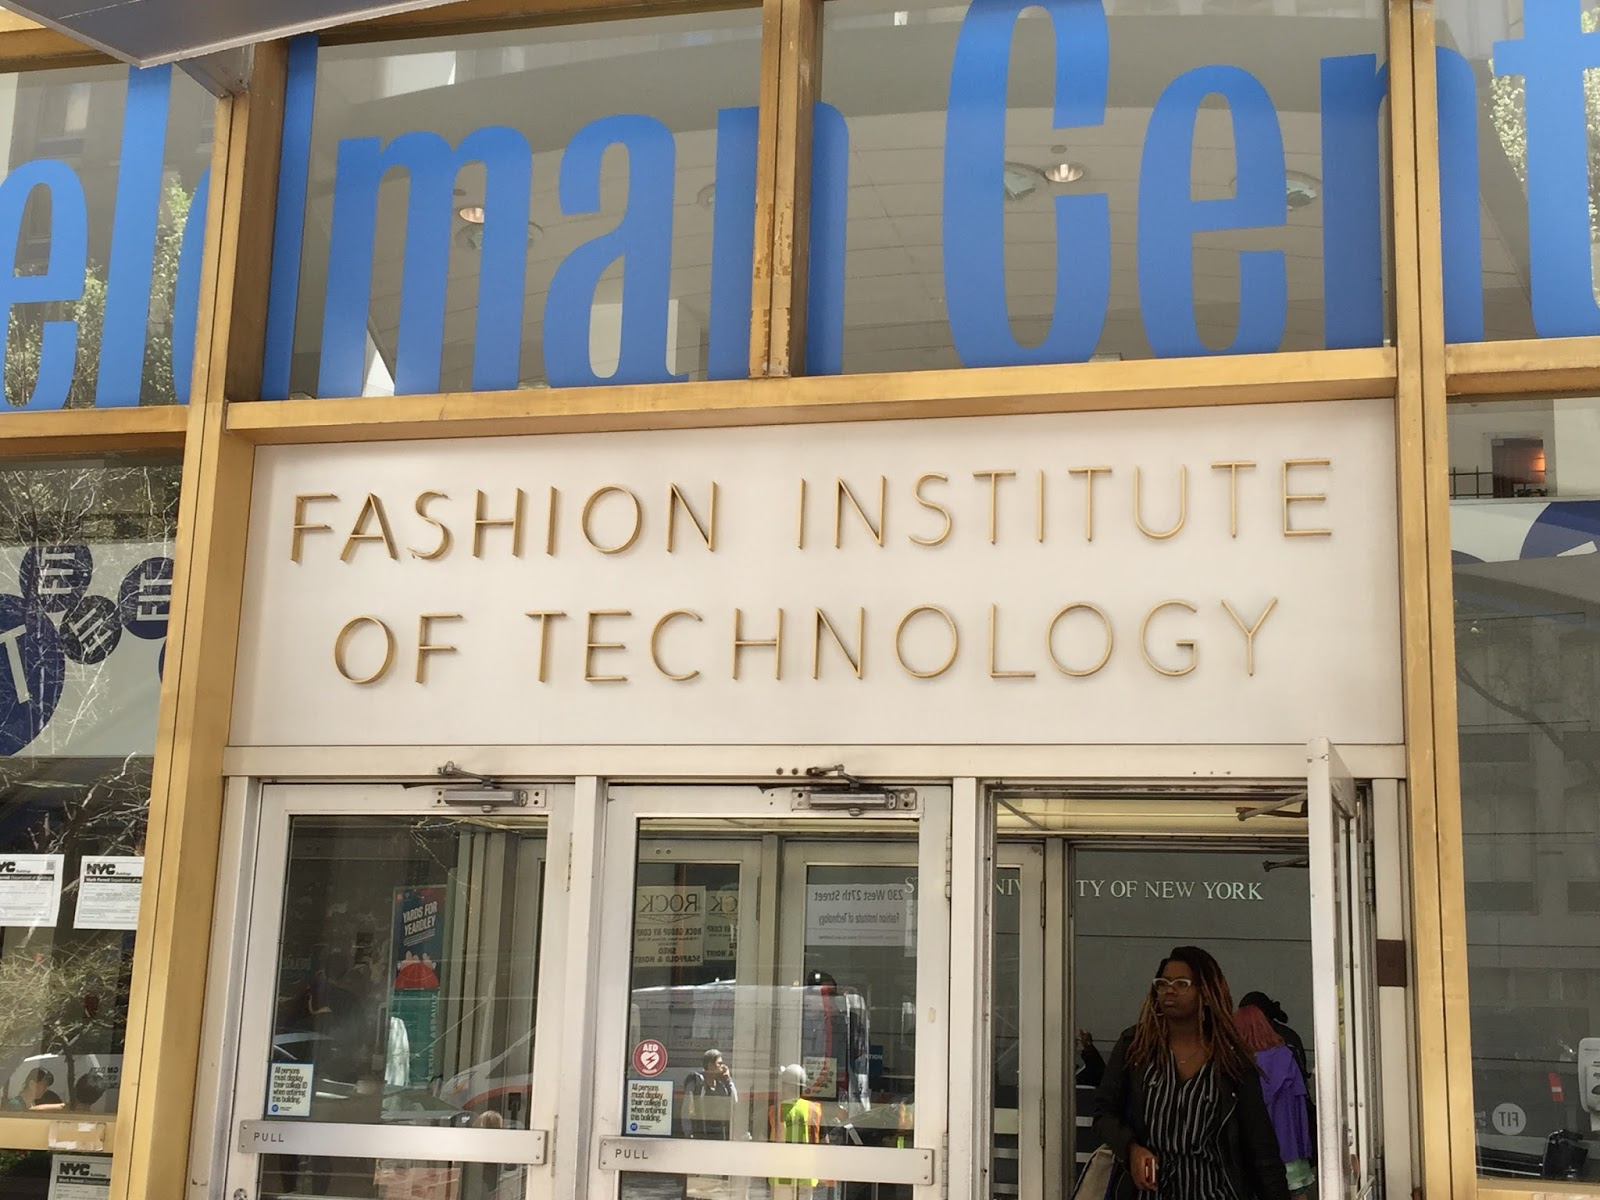 Fashion institute of technology pictures 22